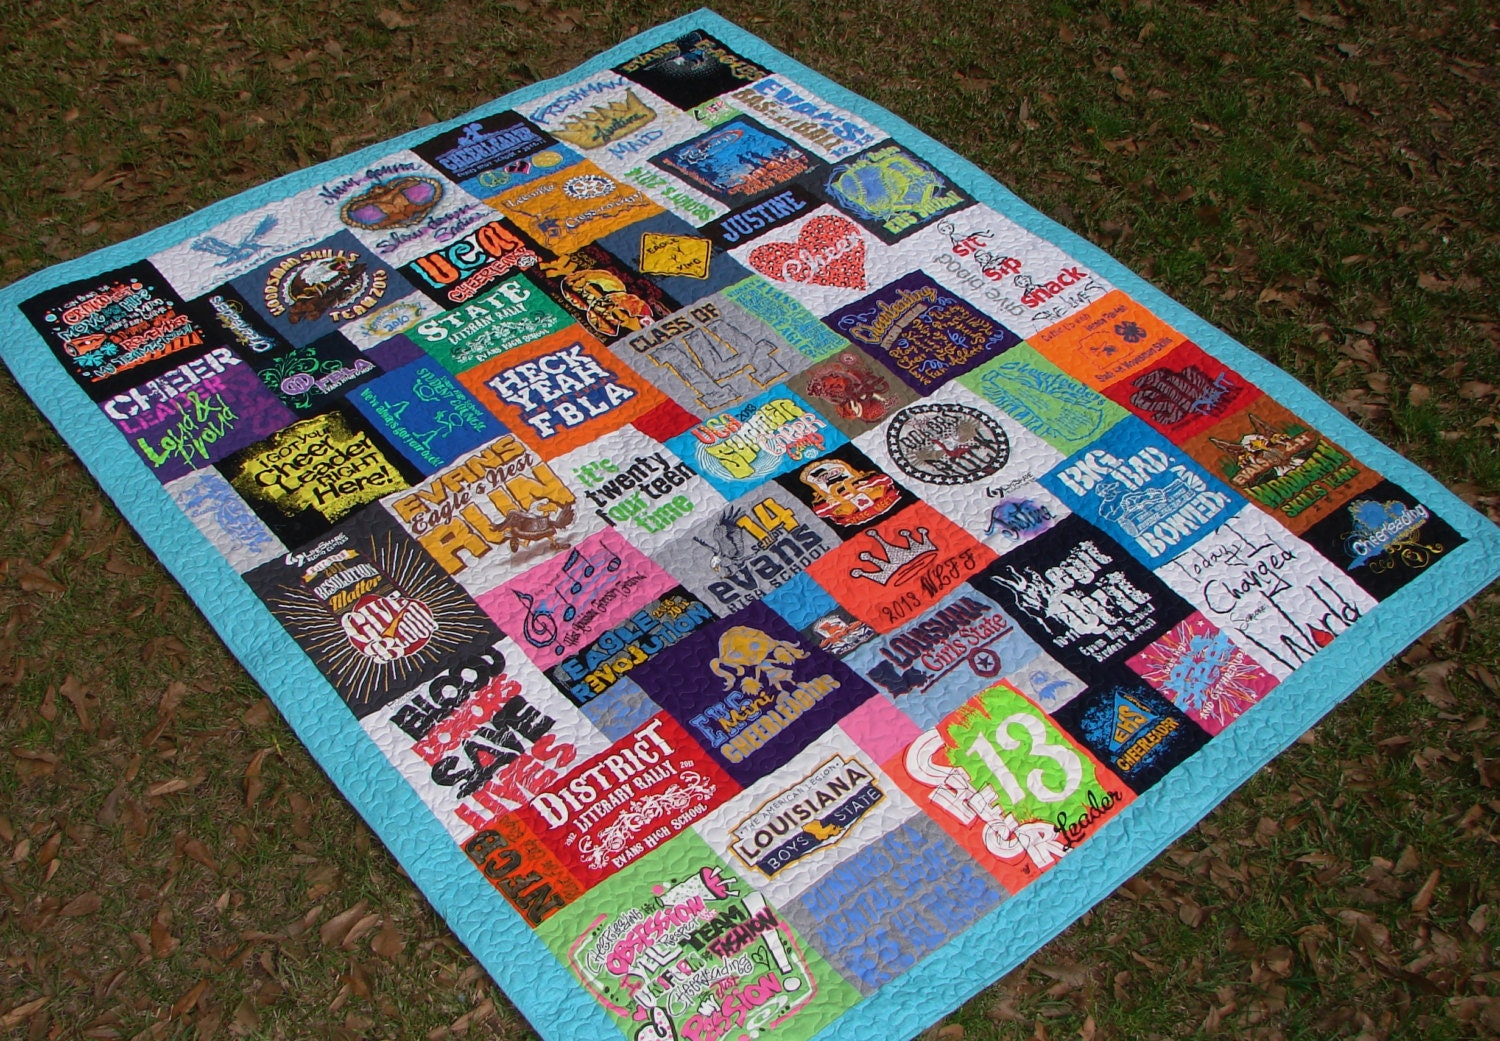 il_fullxfull.596735669_in7w T Shirt Quilt Order Form on poster order form, shirt size form, green order form, clothing order form, jacket order form, belt order form, design order form, camera order form, book order form, t shirt quote form, toy order form, hooded sweatshirt order form, gift order form, employee uniform request form, logo order form, shirt apparel order form, work shirt order form, polo shirt order form, uniform shirt order form, sweater order form,